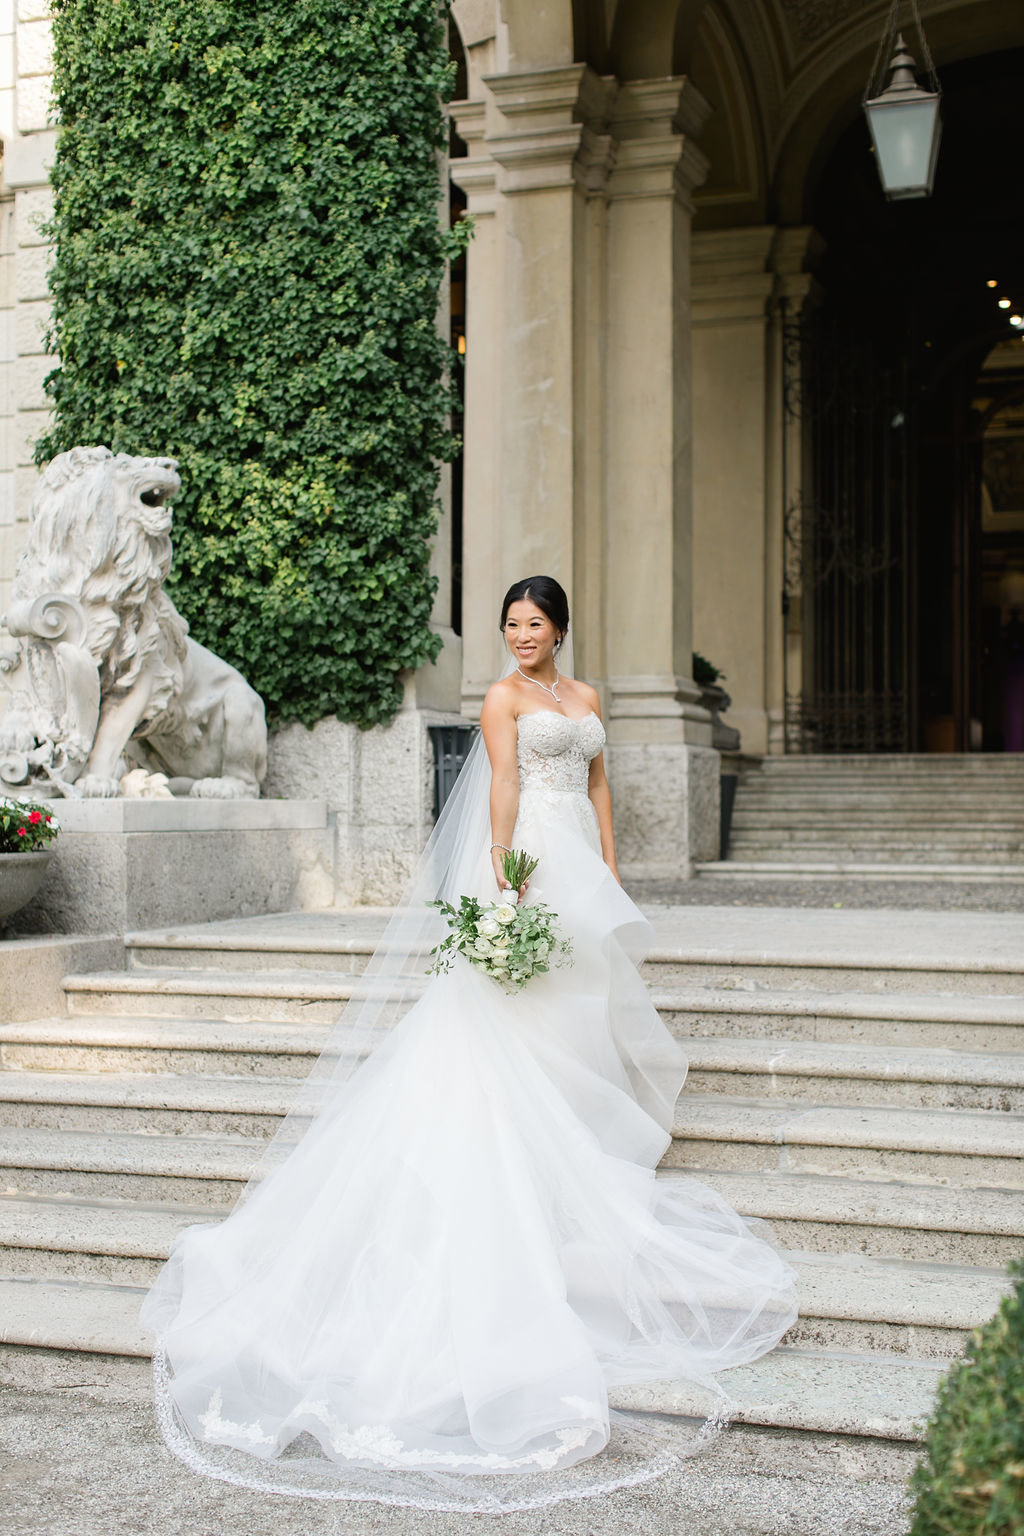 villa-erba-lake-como-wedding-photographer-roberta-facchini-photography-65